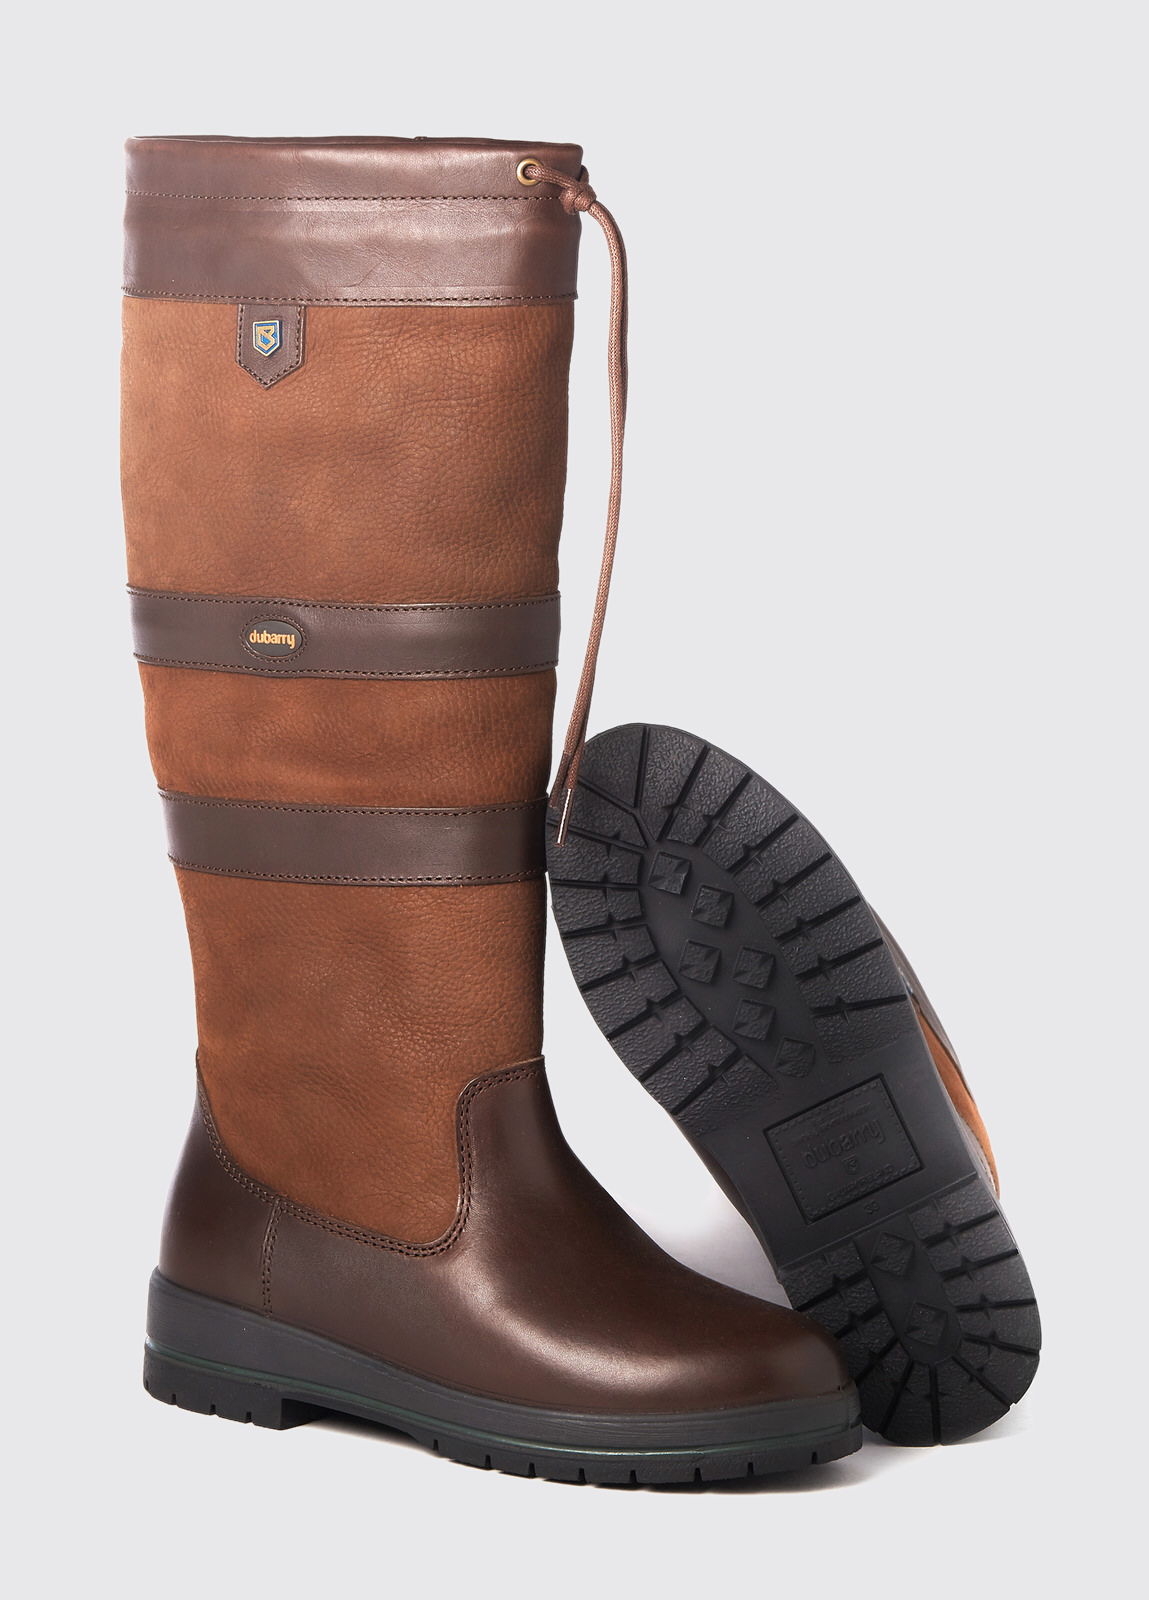 Dubarry Galway EX Fitt waterproof leather country boot in Walnut